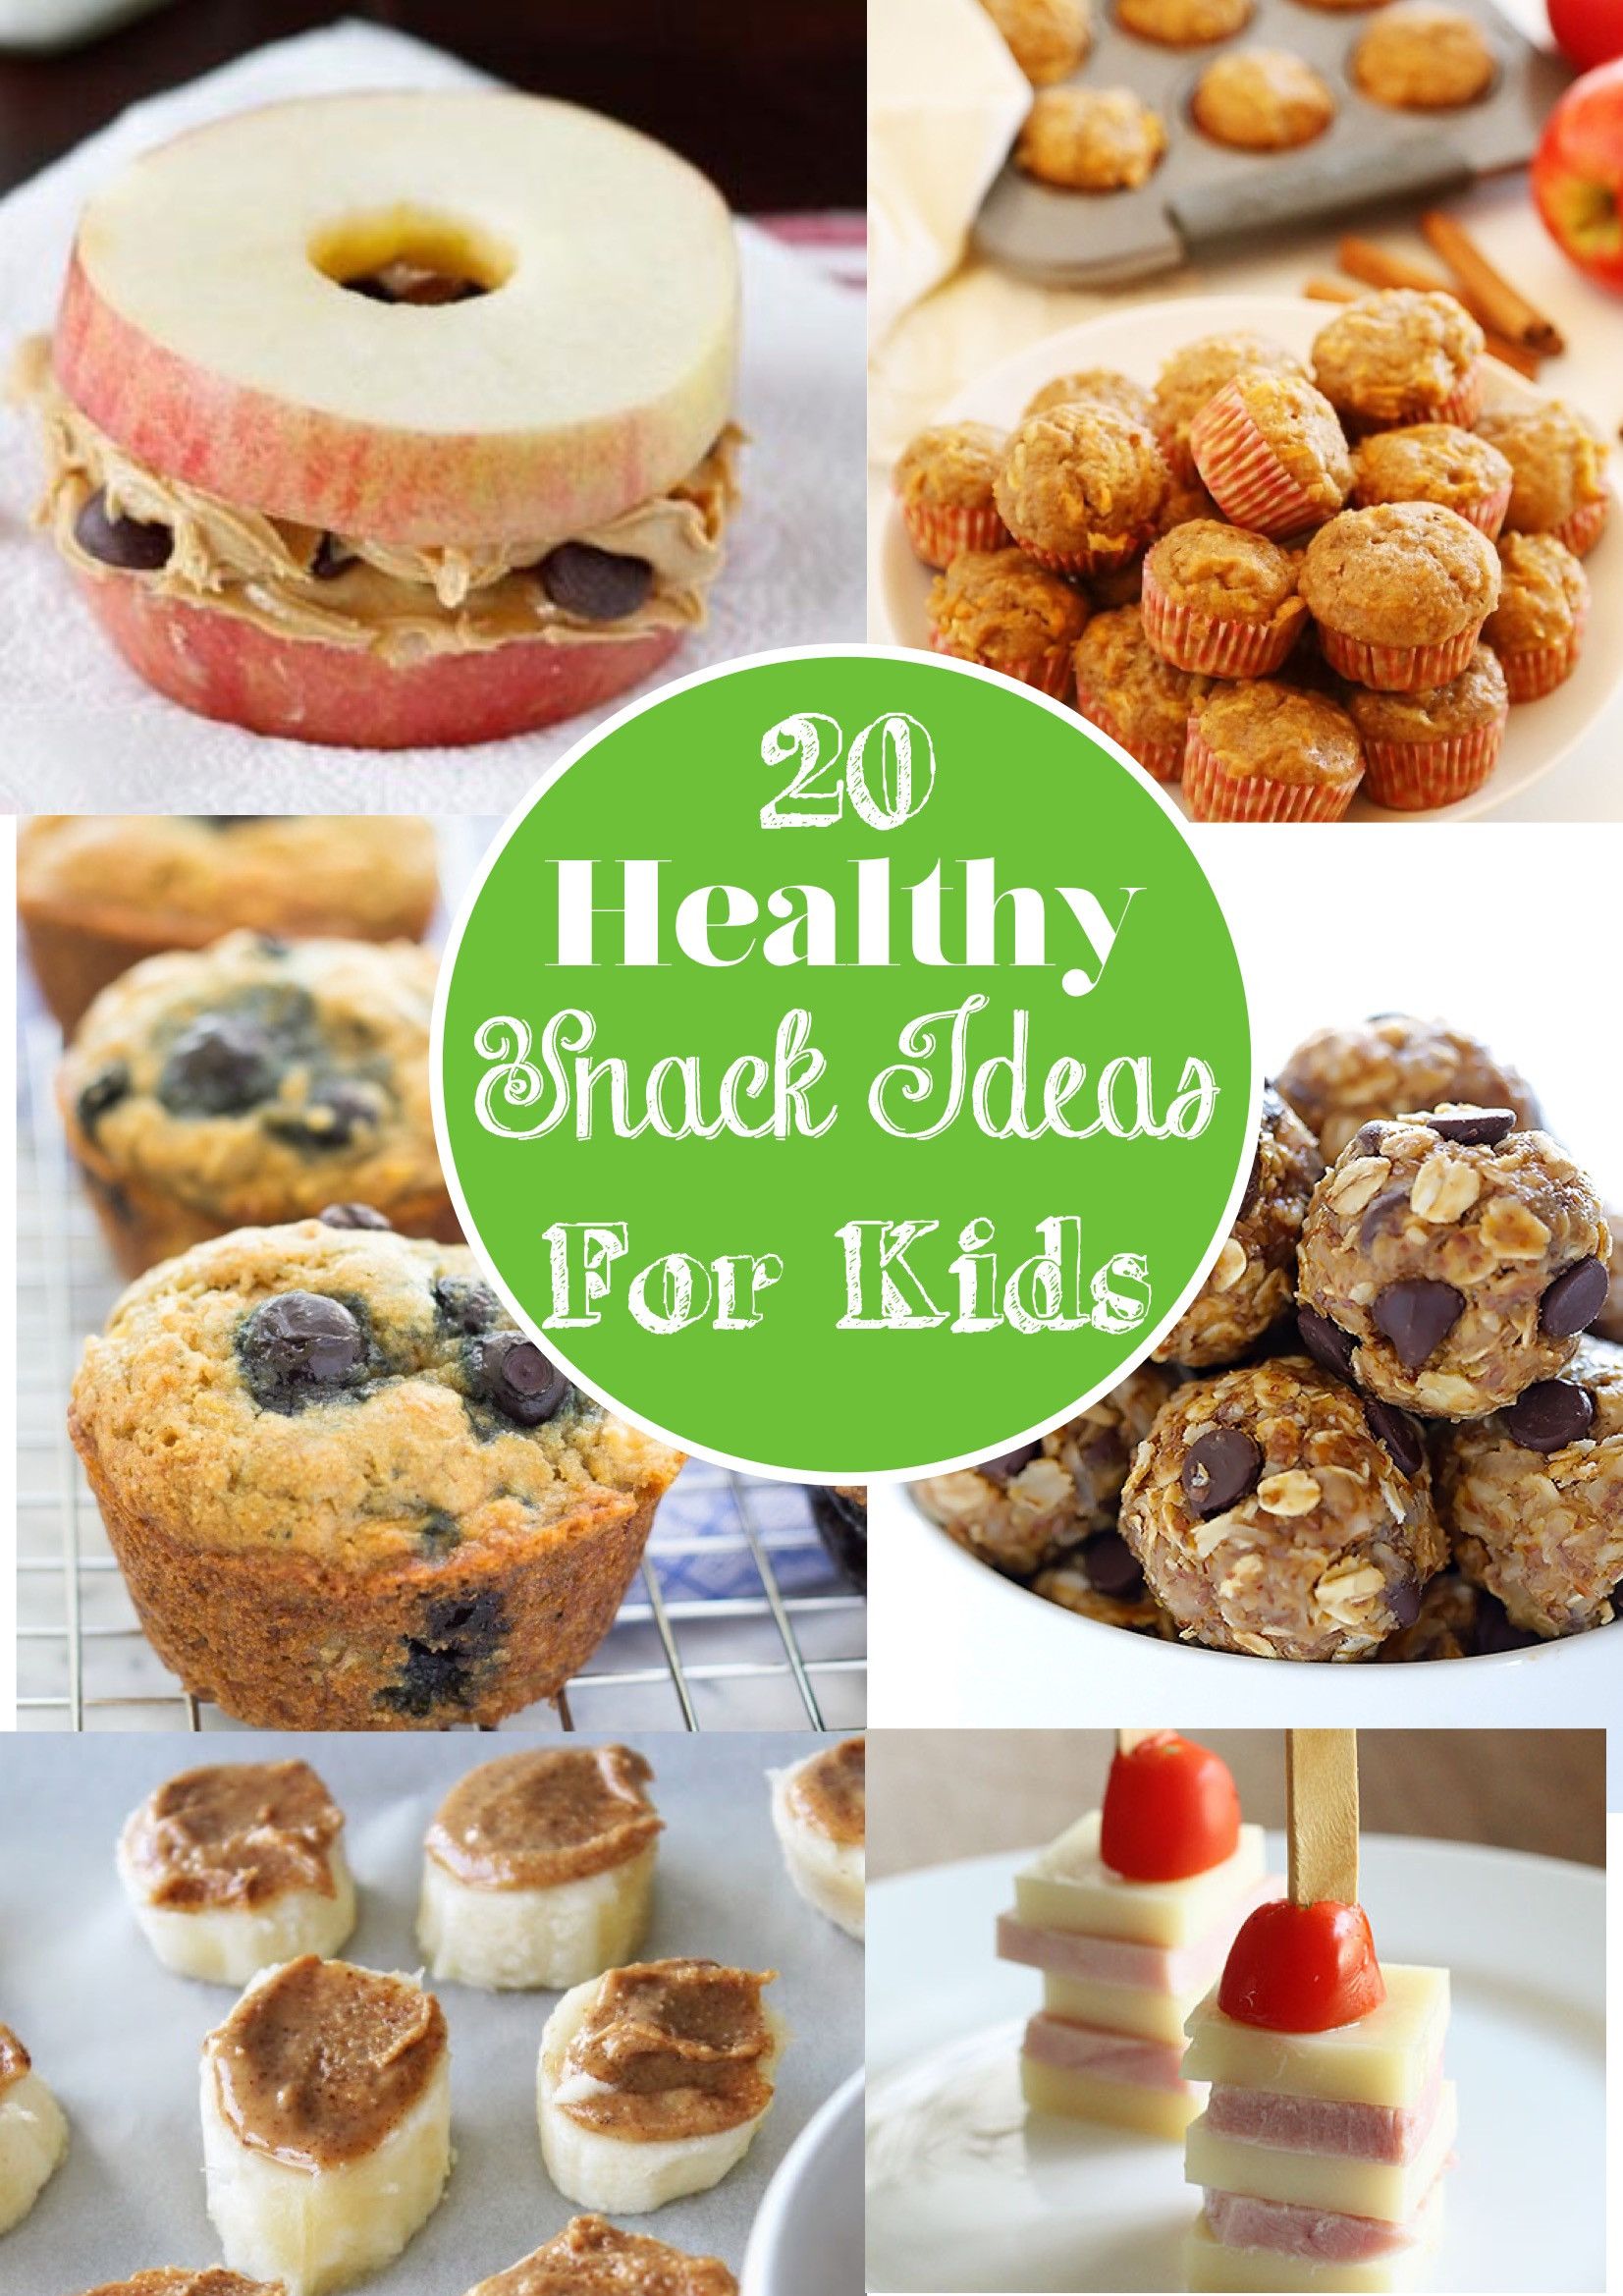 Easy Healthy Snacks For Kids  20 Healthy Snack Ideas For Kids Snack Smart